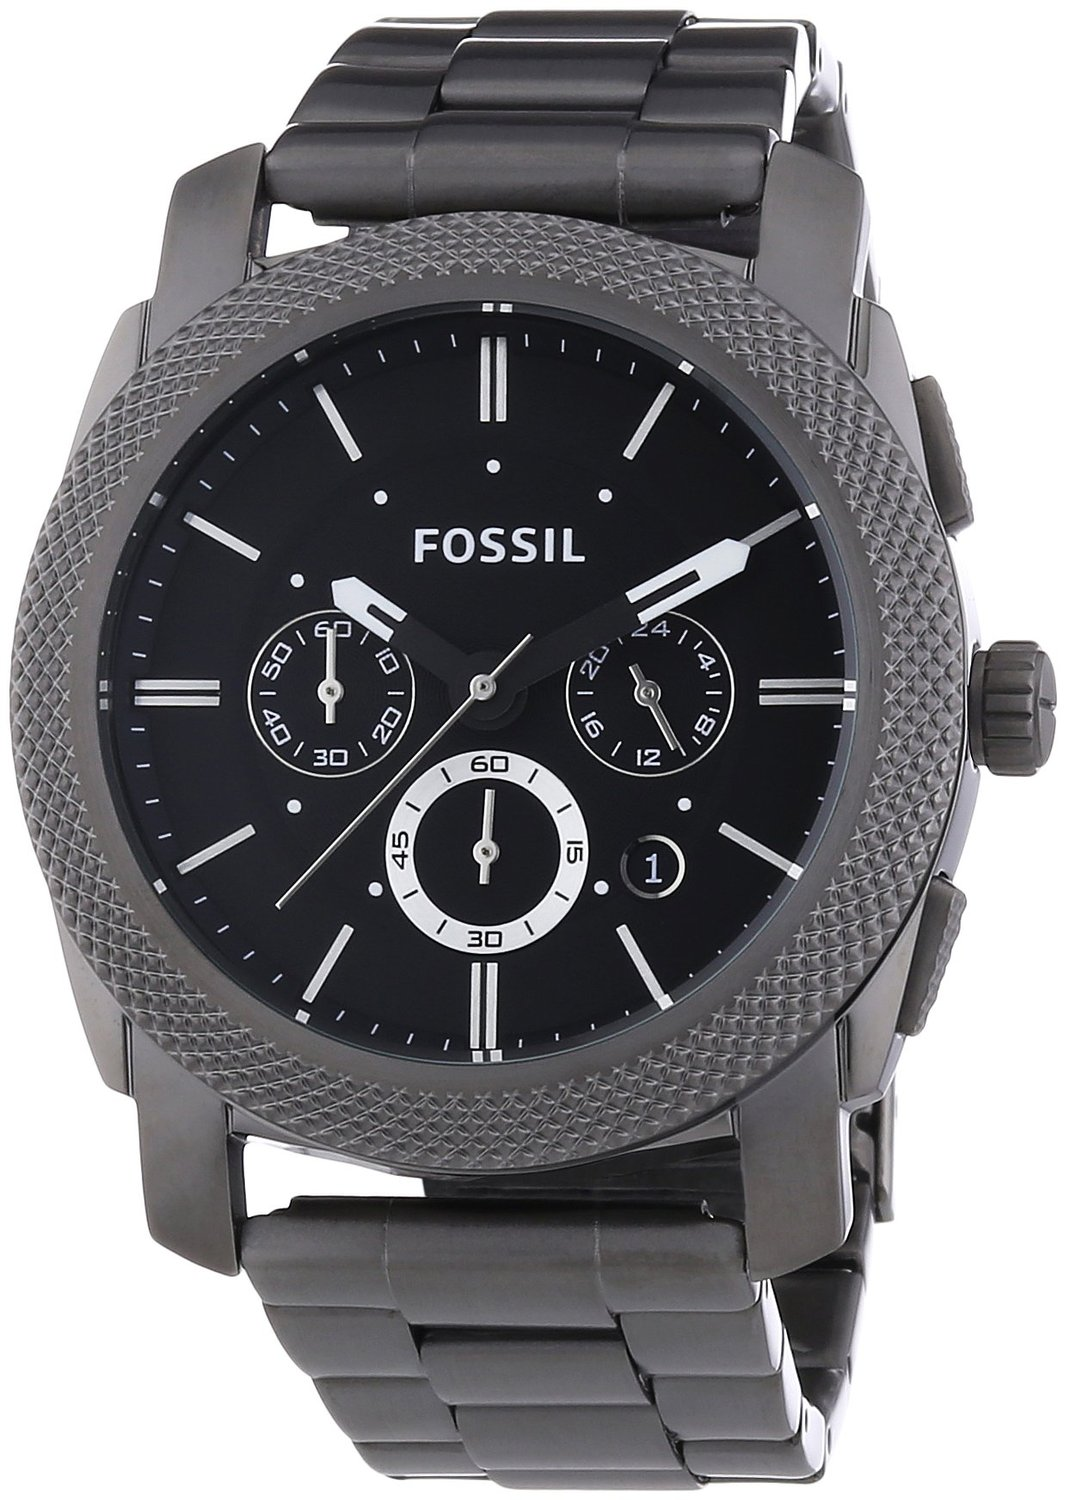 Fossil Men's Machine Chronograph Watch Fs4662 With Black Dial And Smokey Grey Case And Bracelet